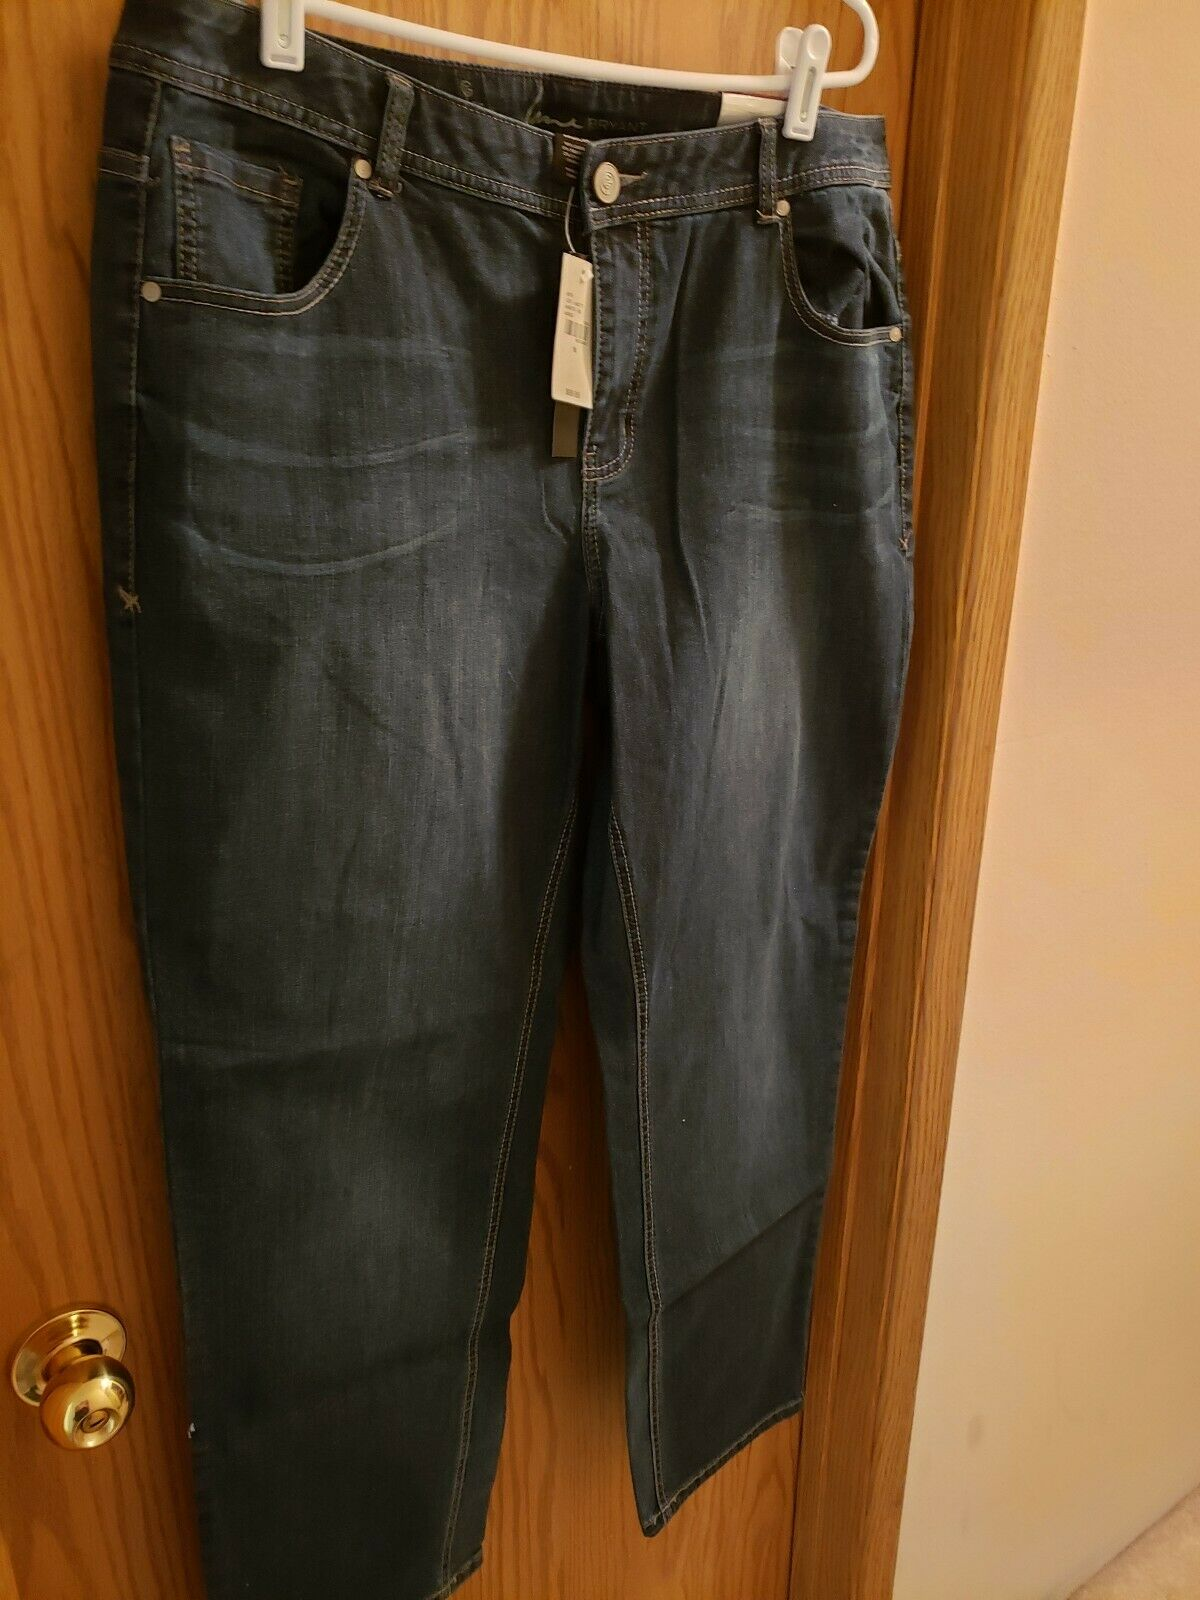 NWT Lane Bryant 3T Skinny Jeans, Medium Wash,Size 18